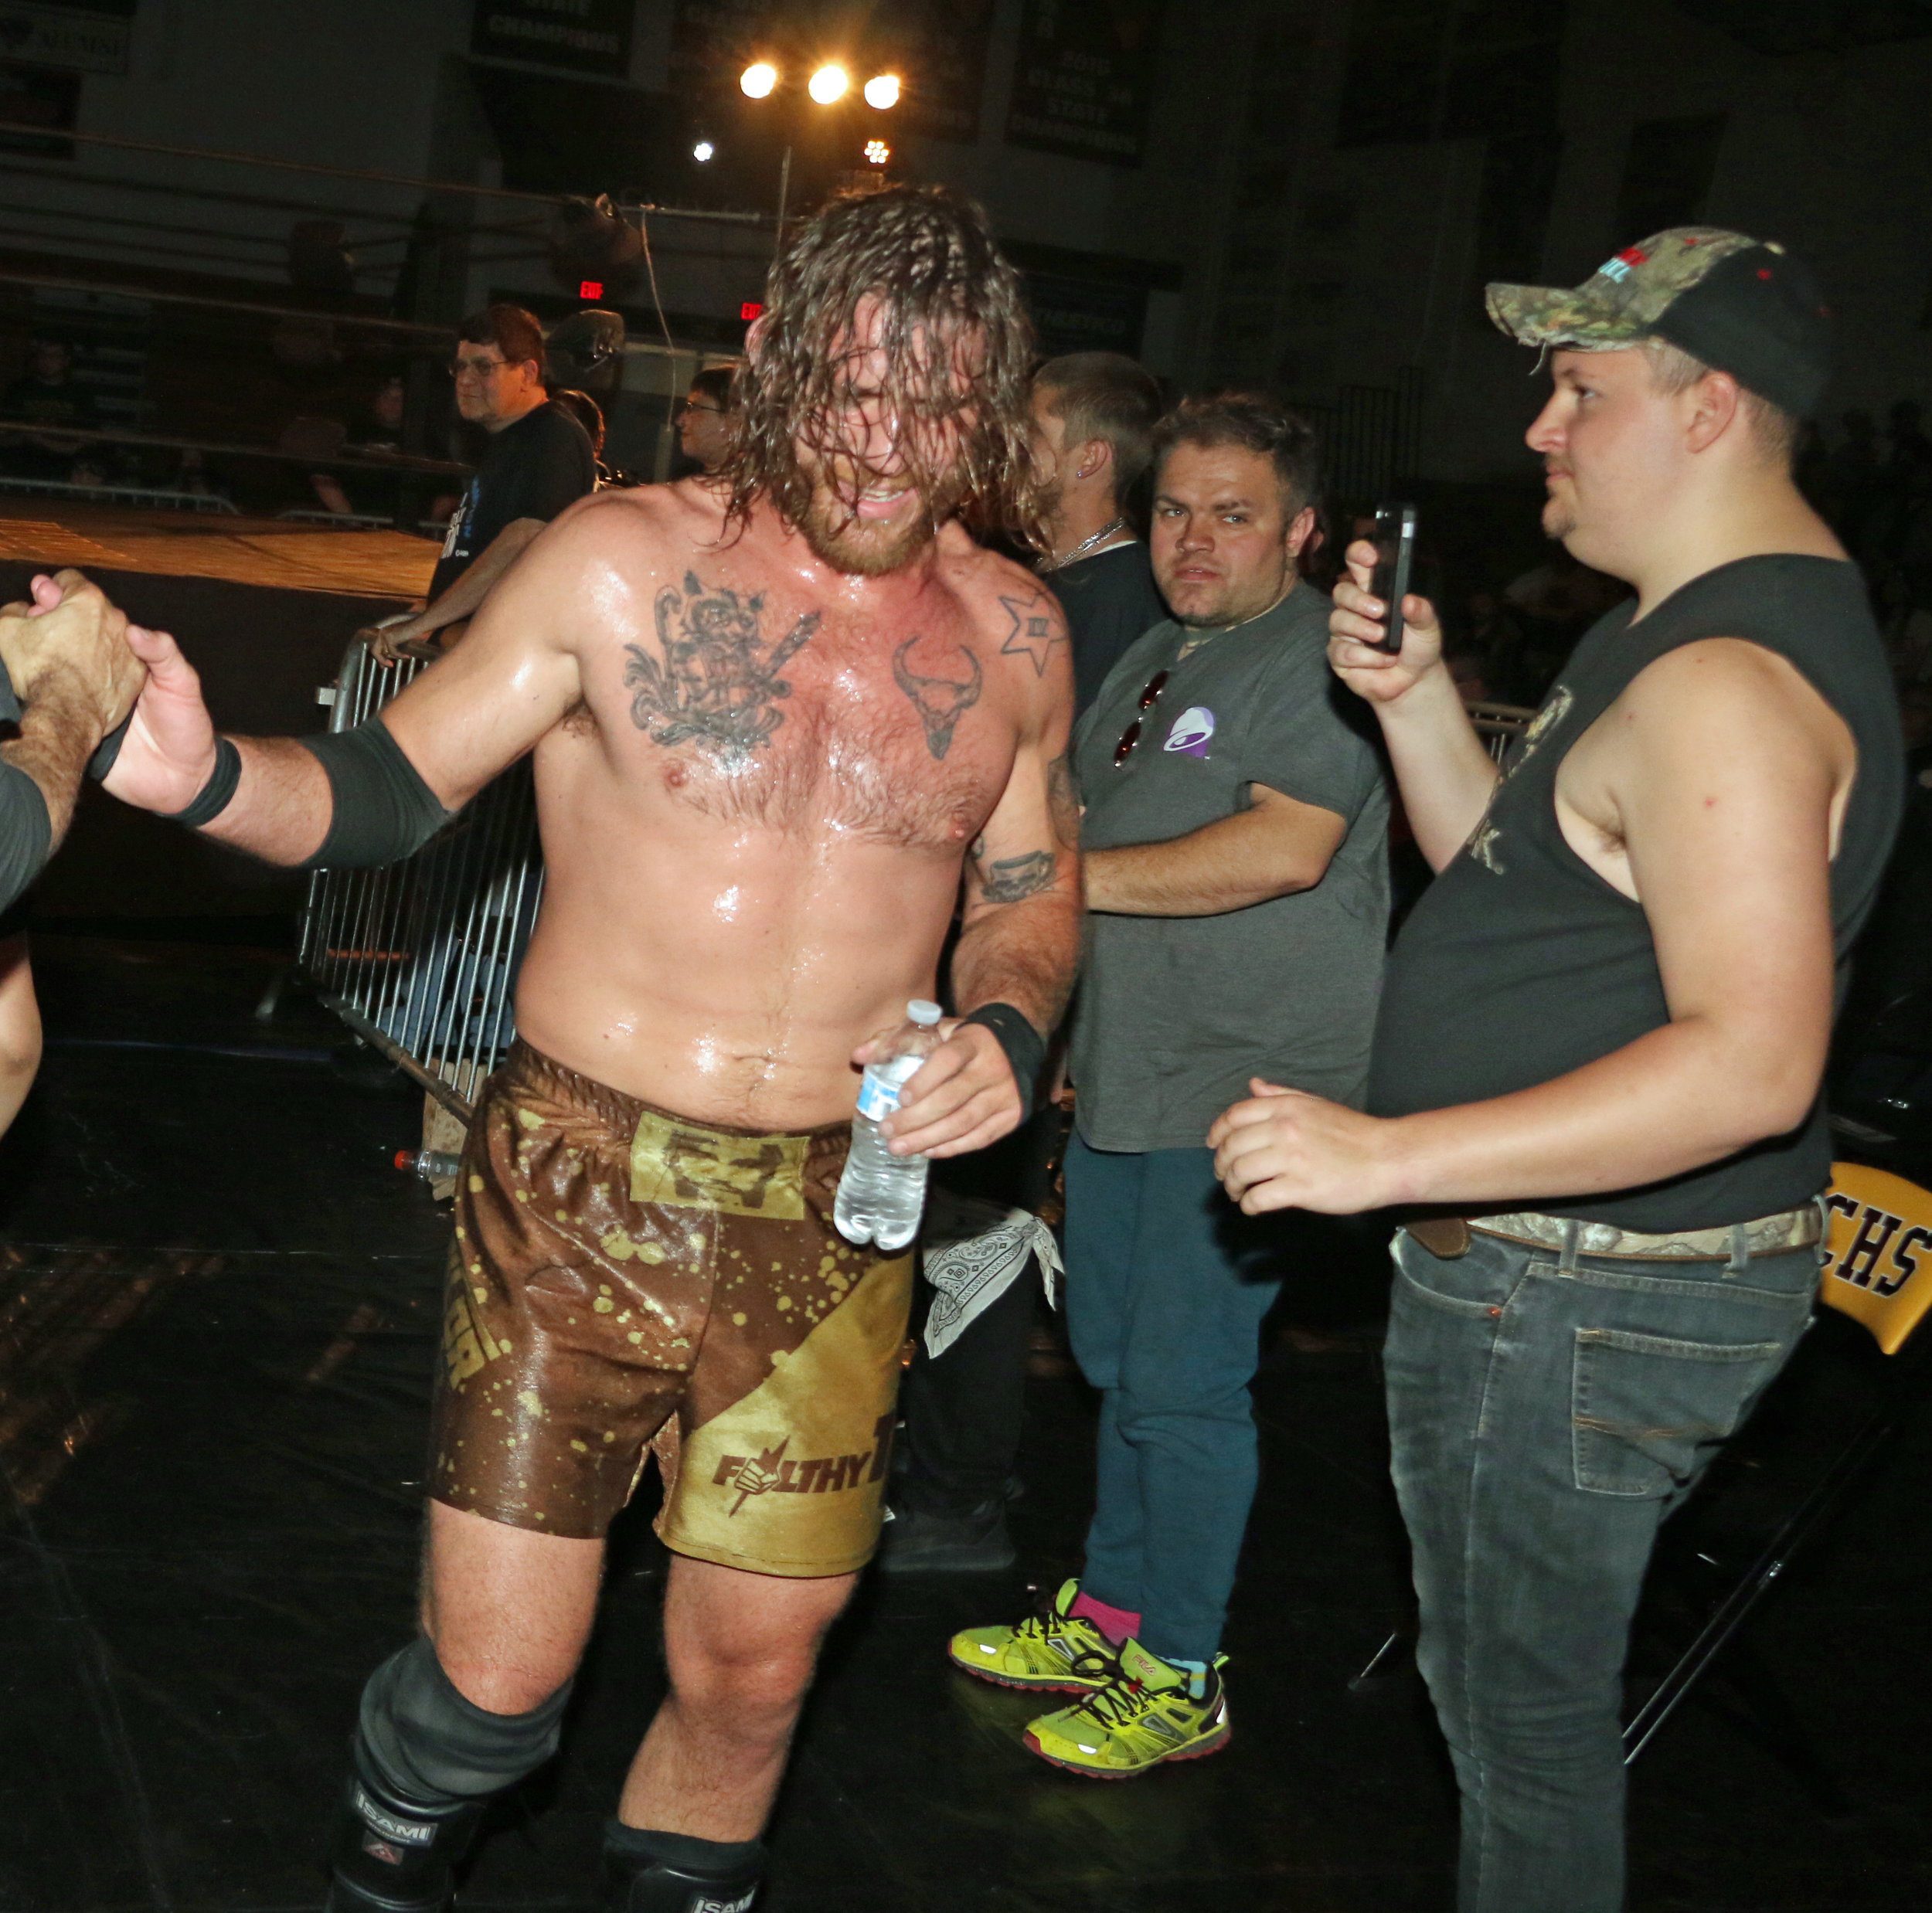 Tom Lawlor celebrates his hard-earned victory over Chris Ridgeway.